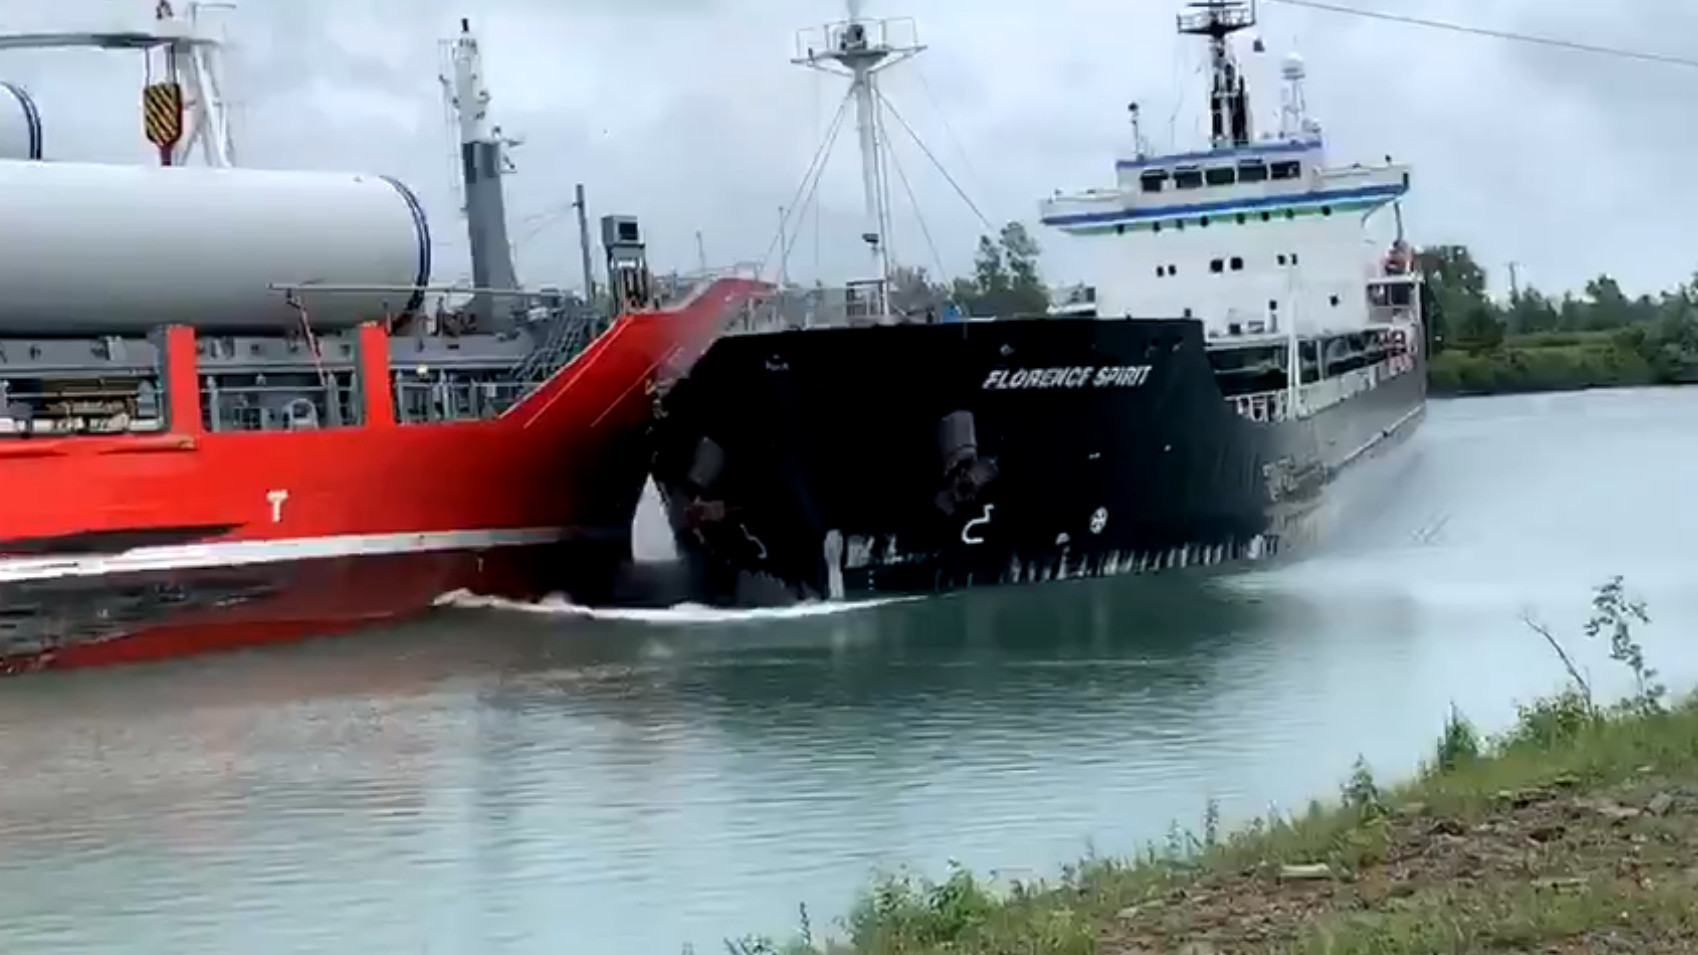 Dramatic collision between two vessels on Welland Canal caught on tape - CityNews Toronto